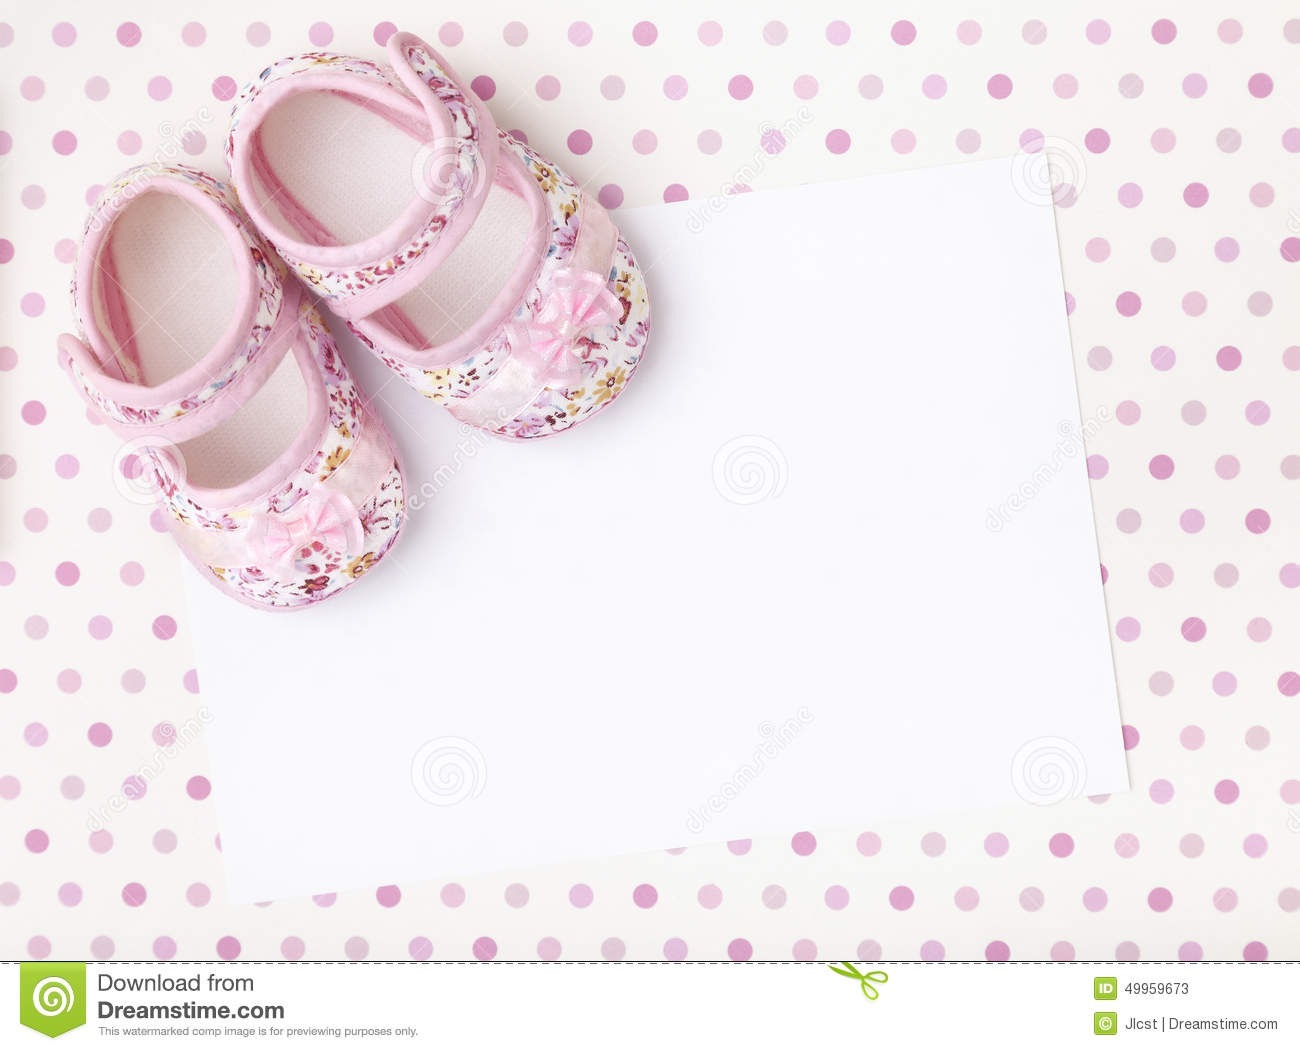 New Baby Announcement Stock Image Image Of Invitation 49959673